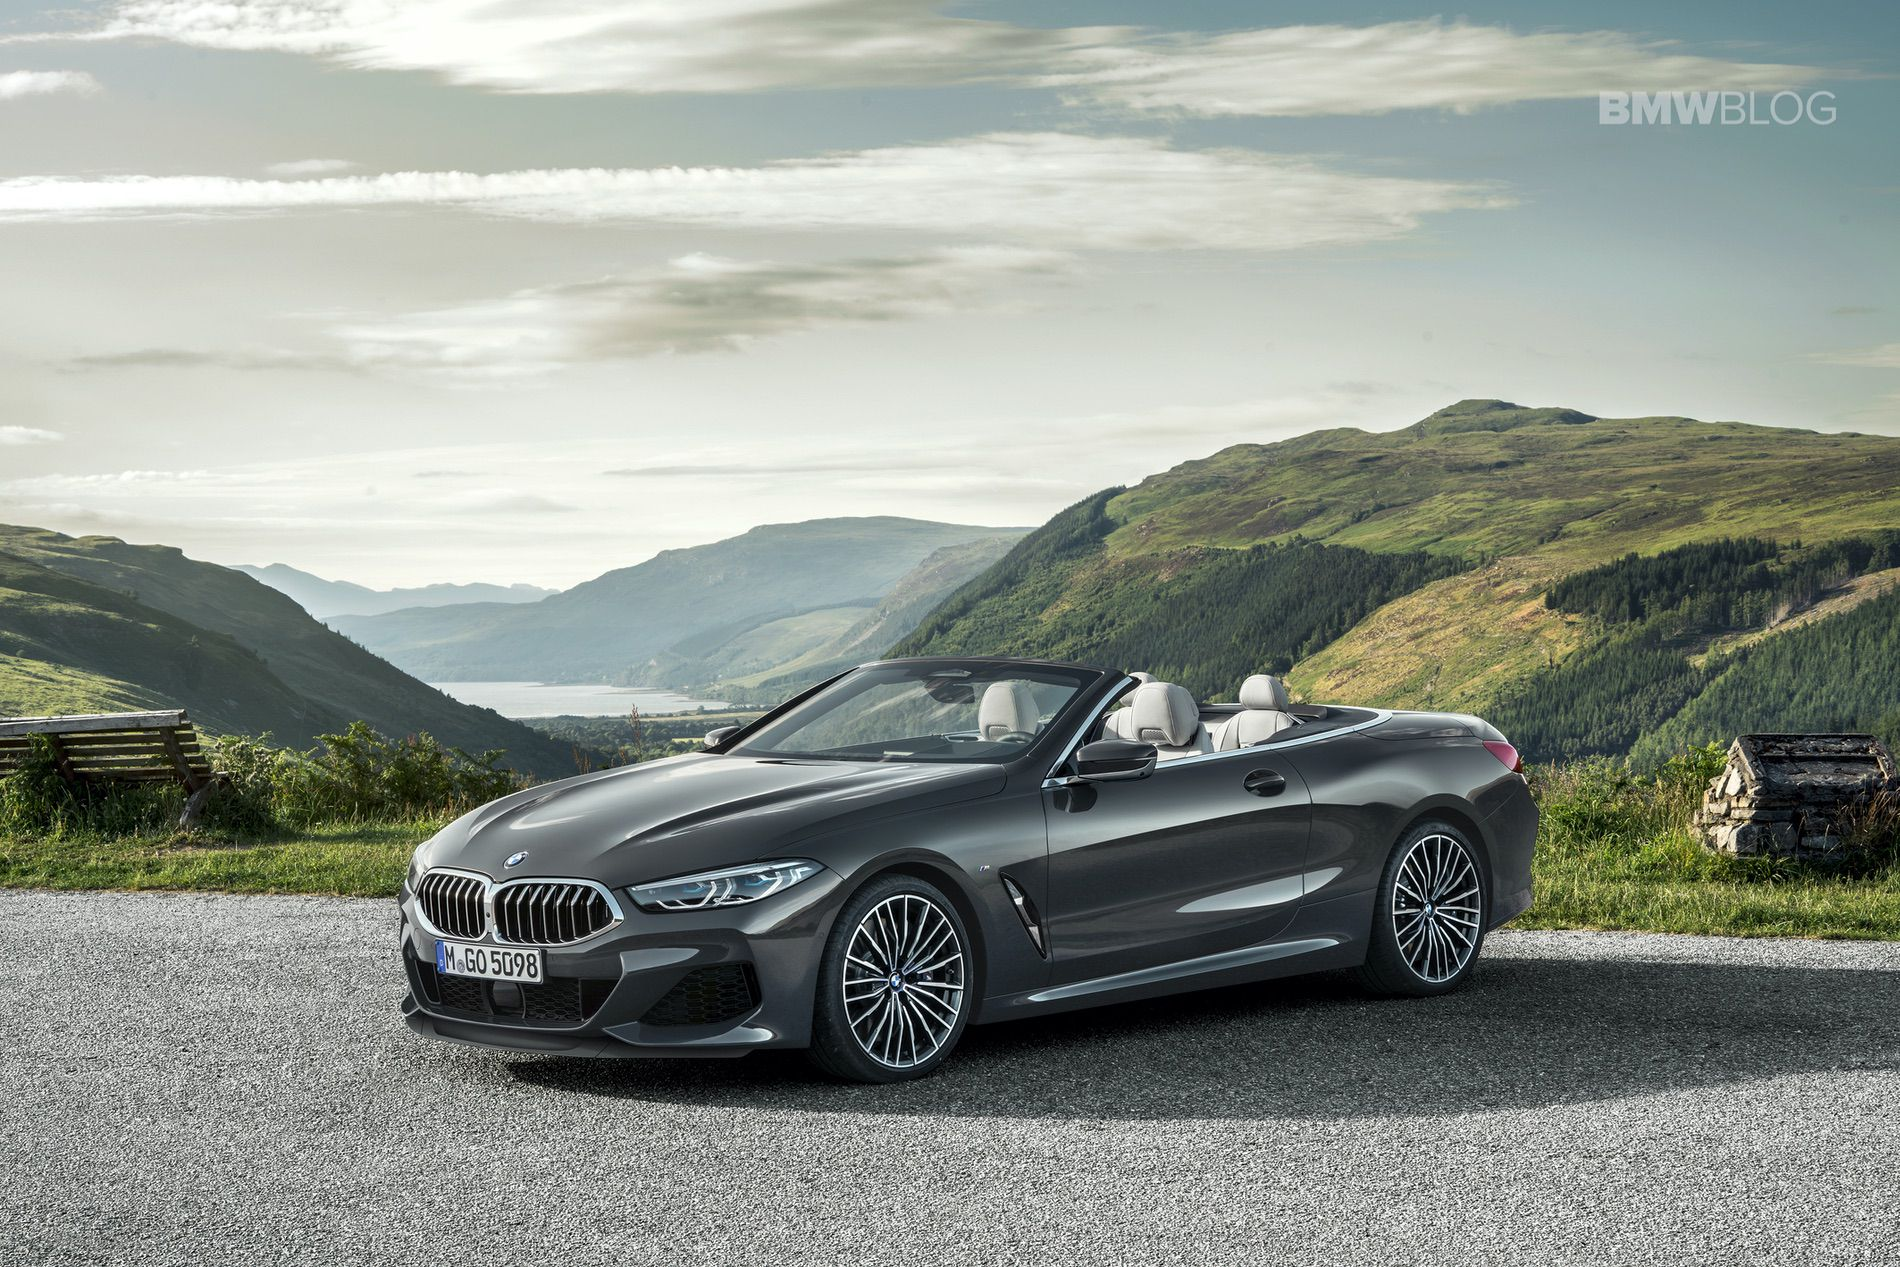 BMW 8 Series Convertible images 32